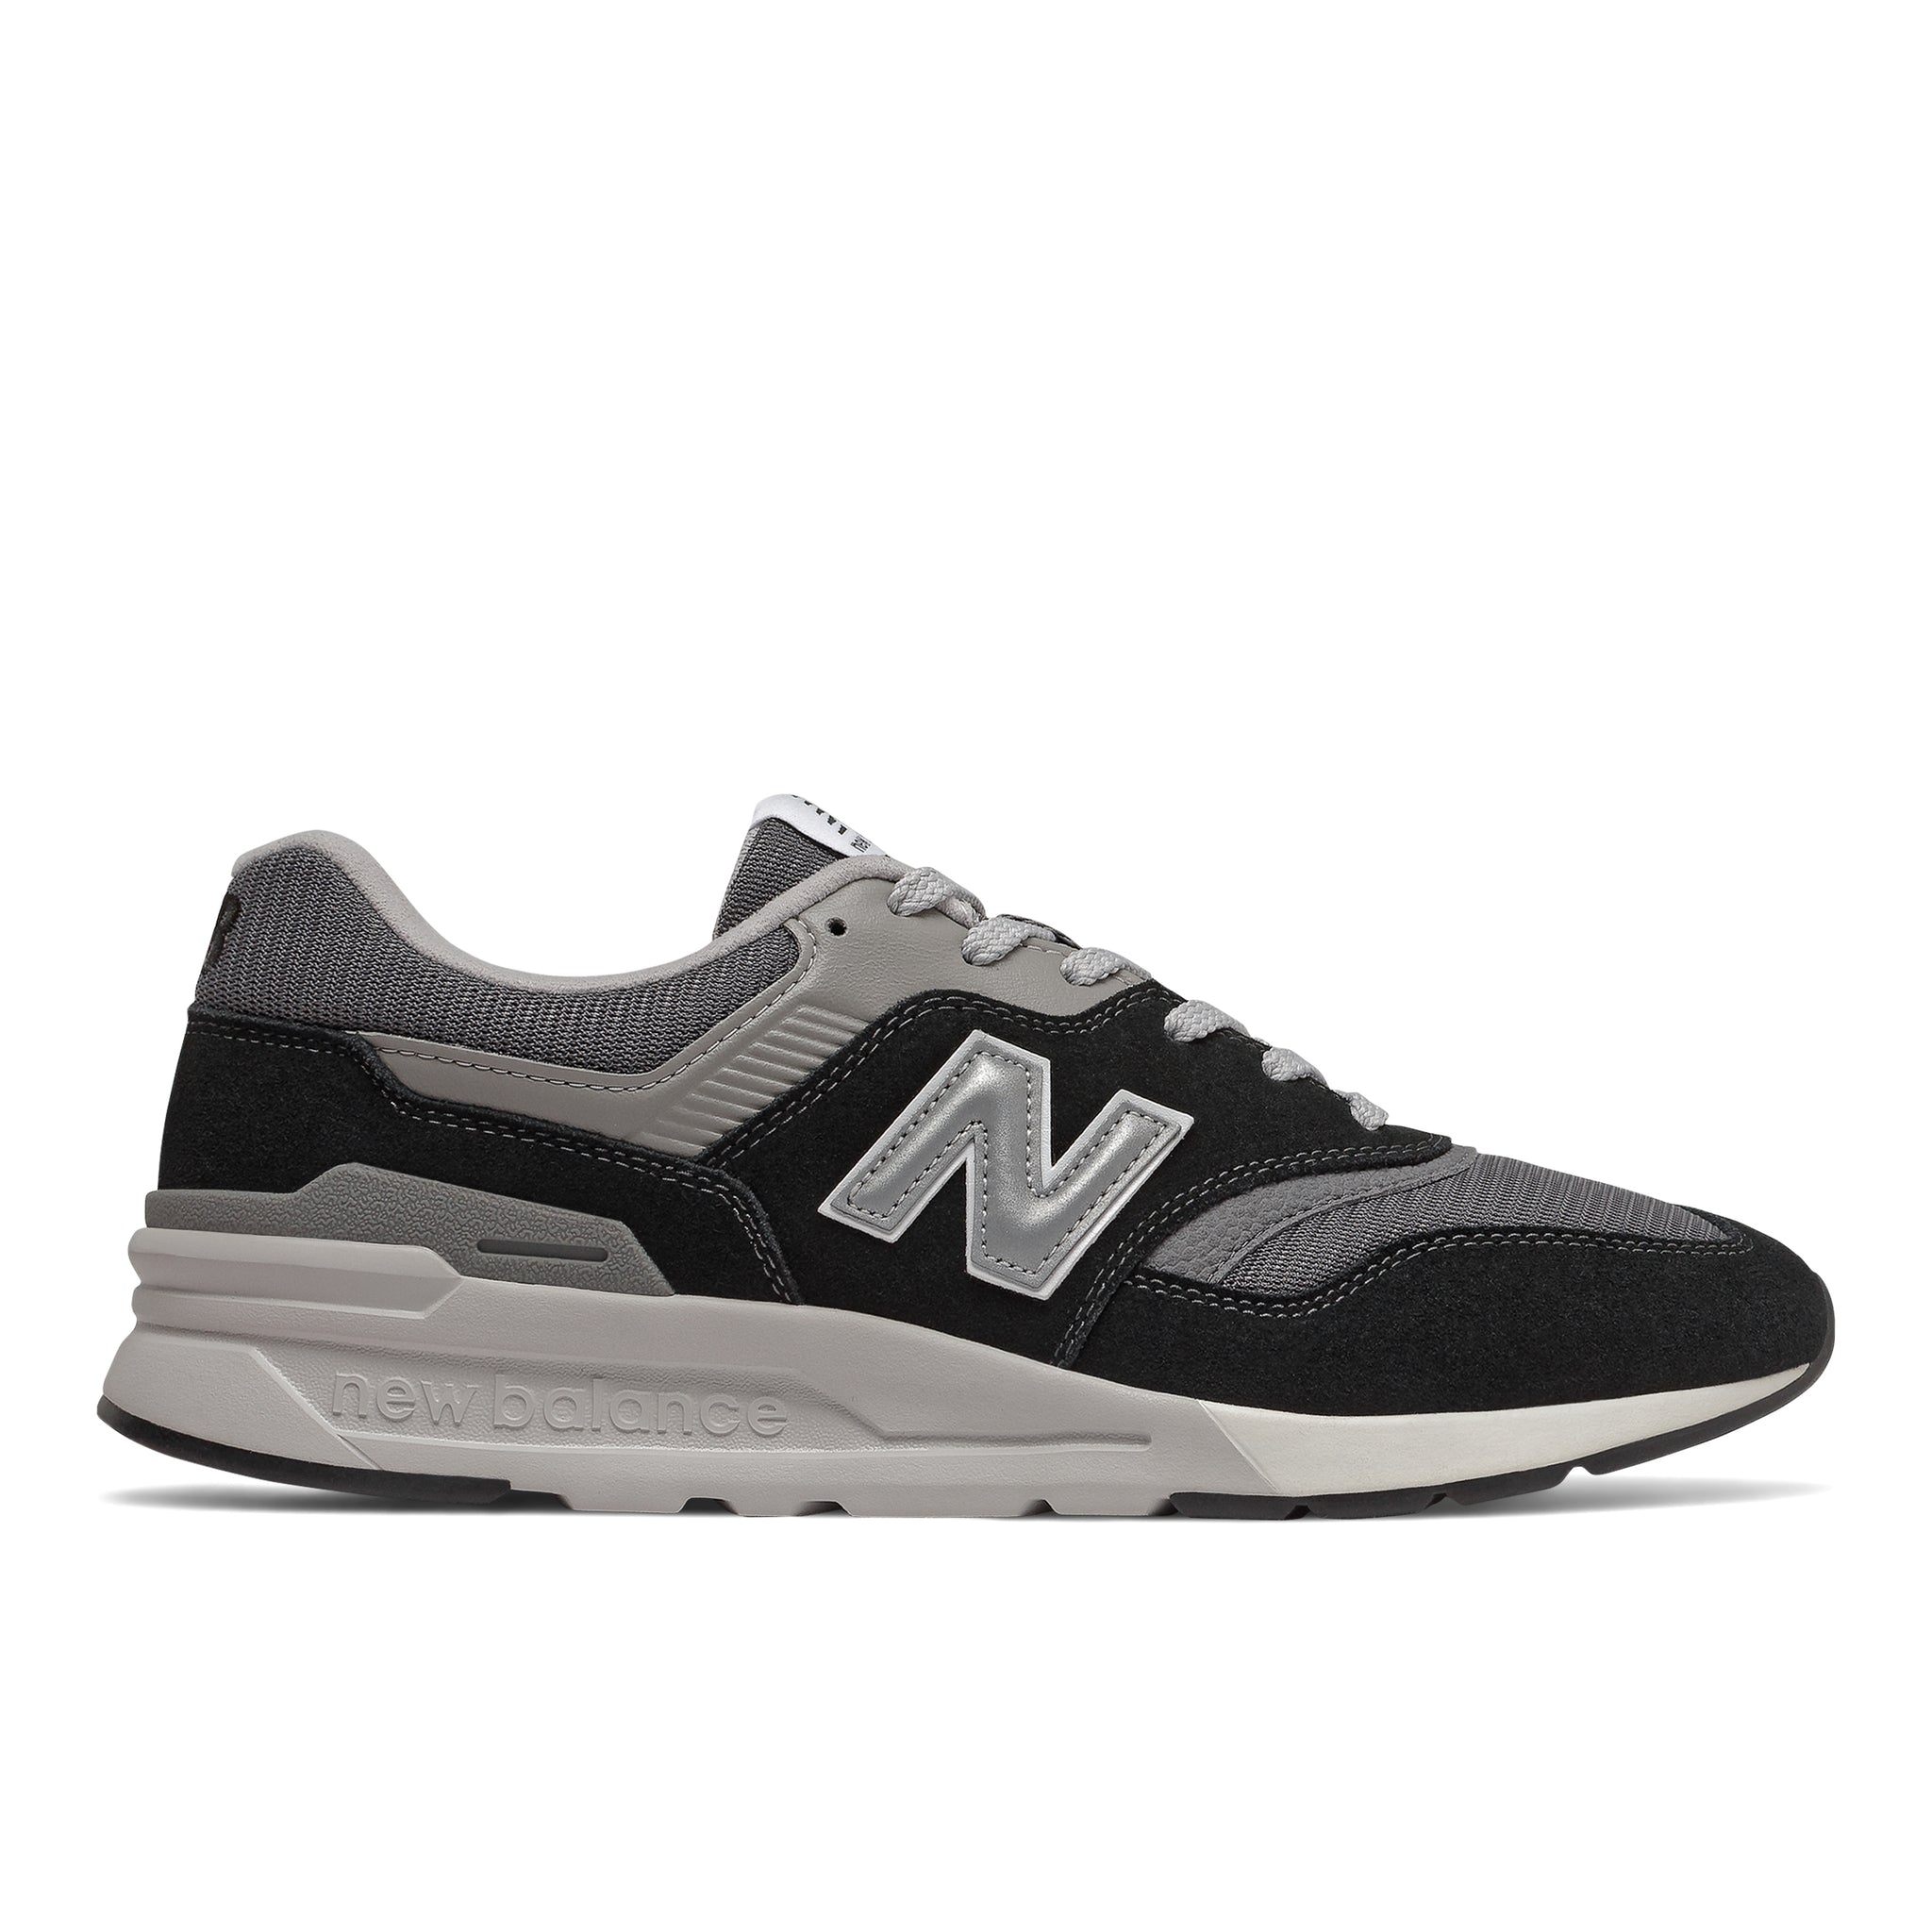 New Balance - CM997HBK, black/grey